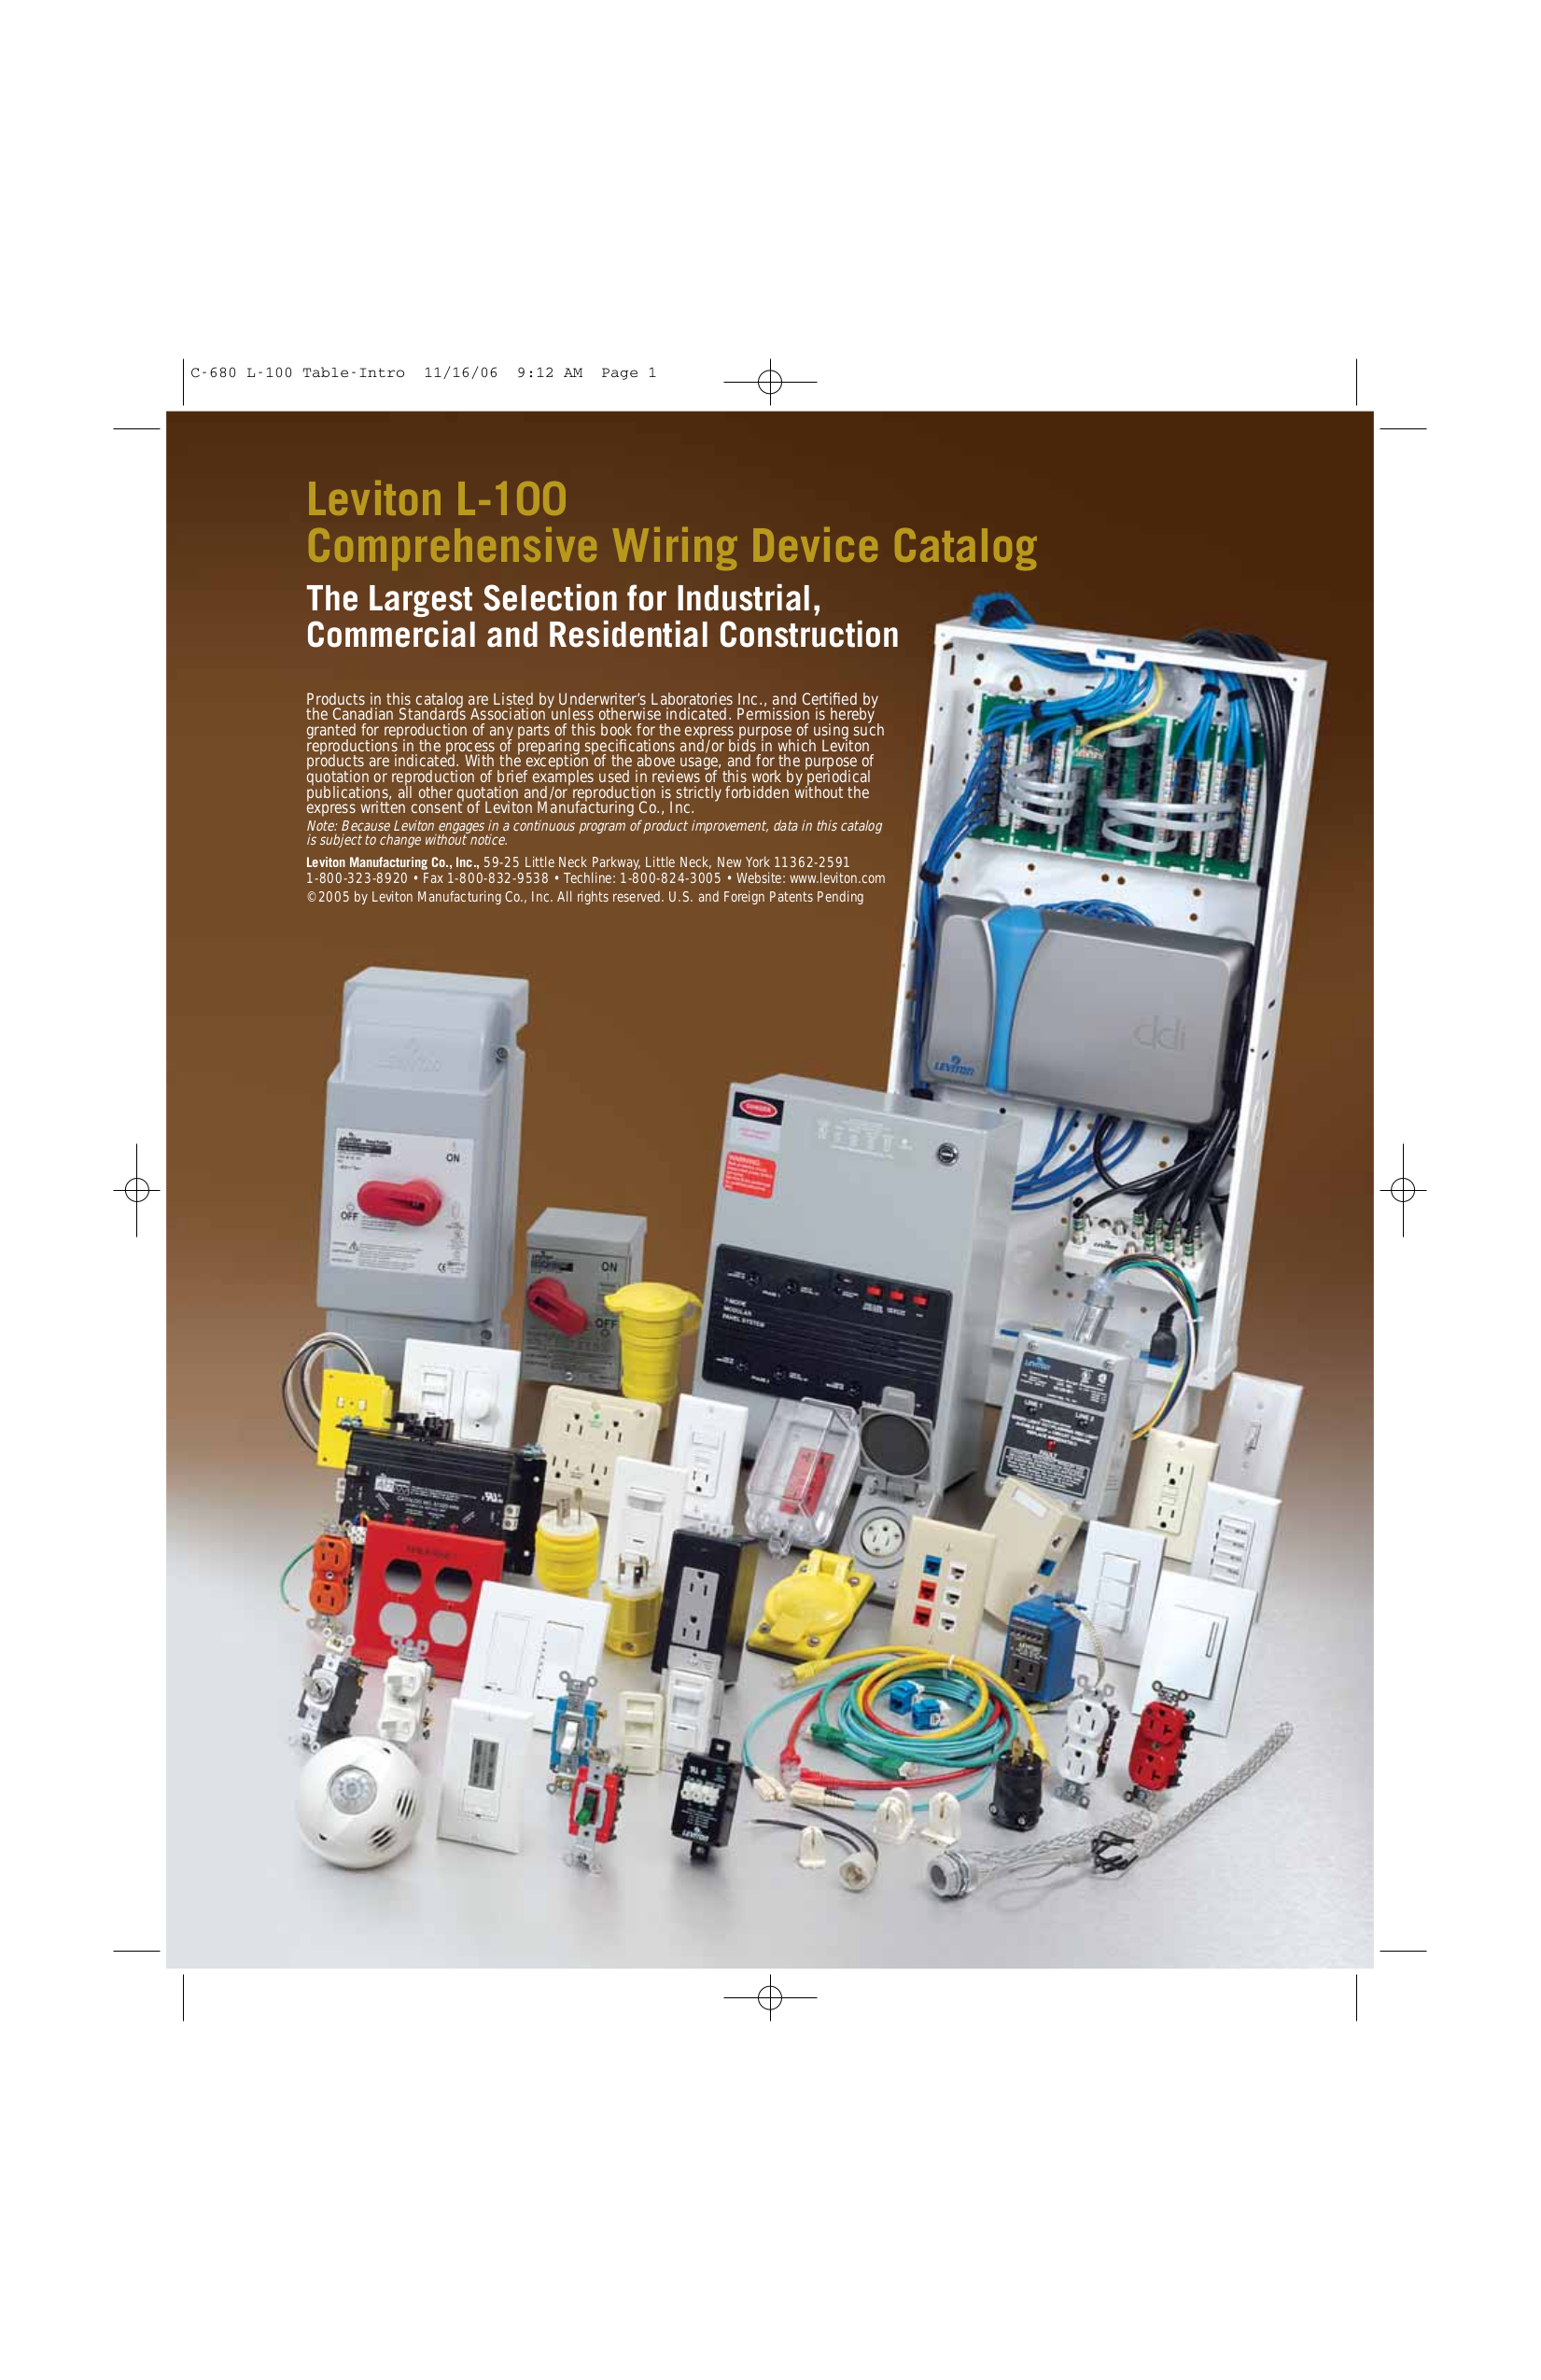 Amazing Leviton Catalog Pdf Gallery - The Best Electrical Circuit ...